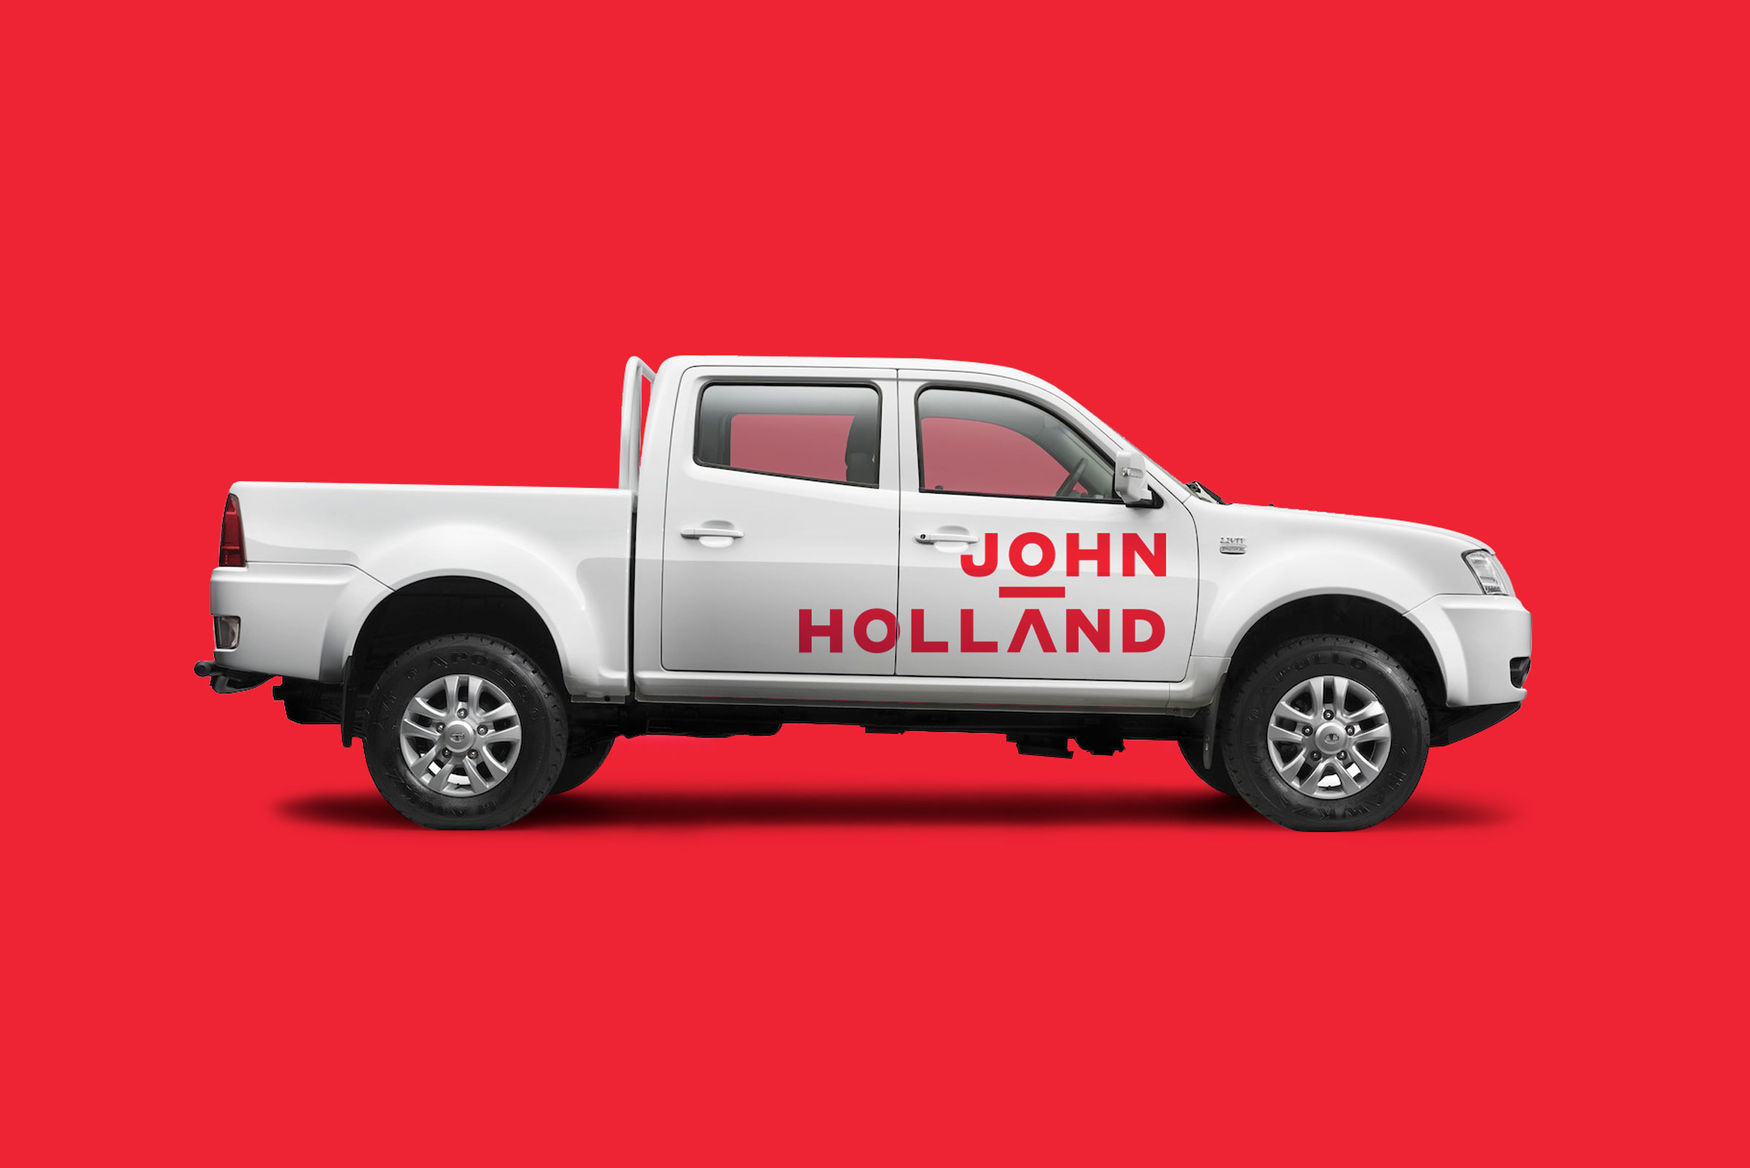 John Holland vehicle livery